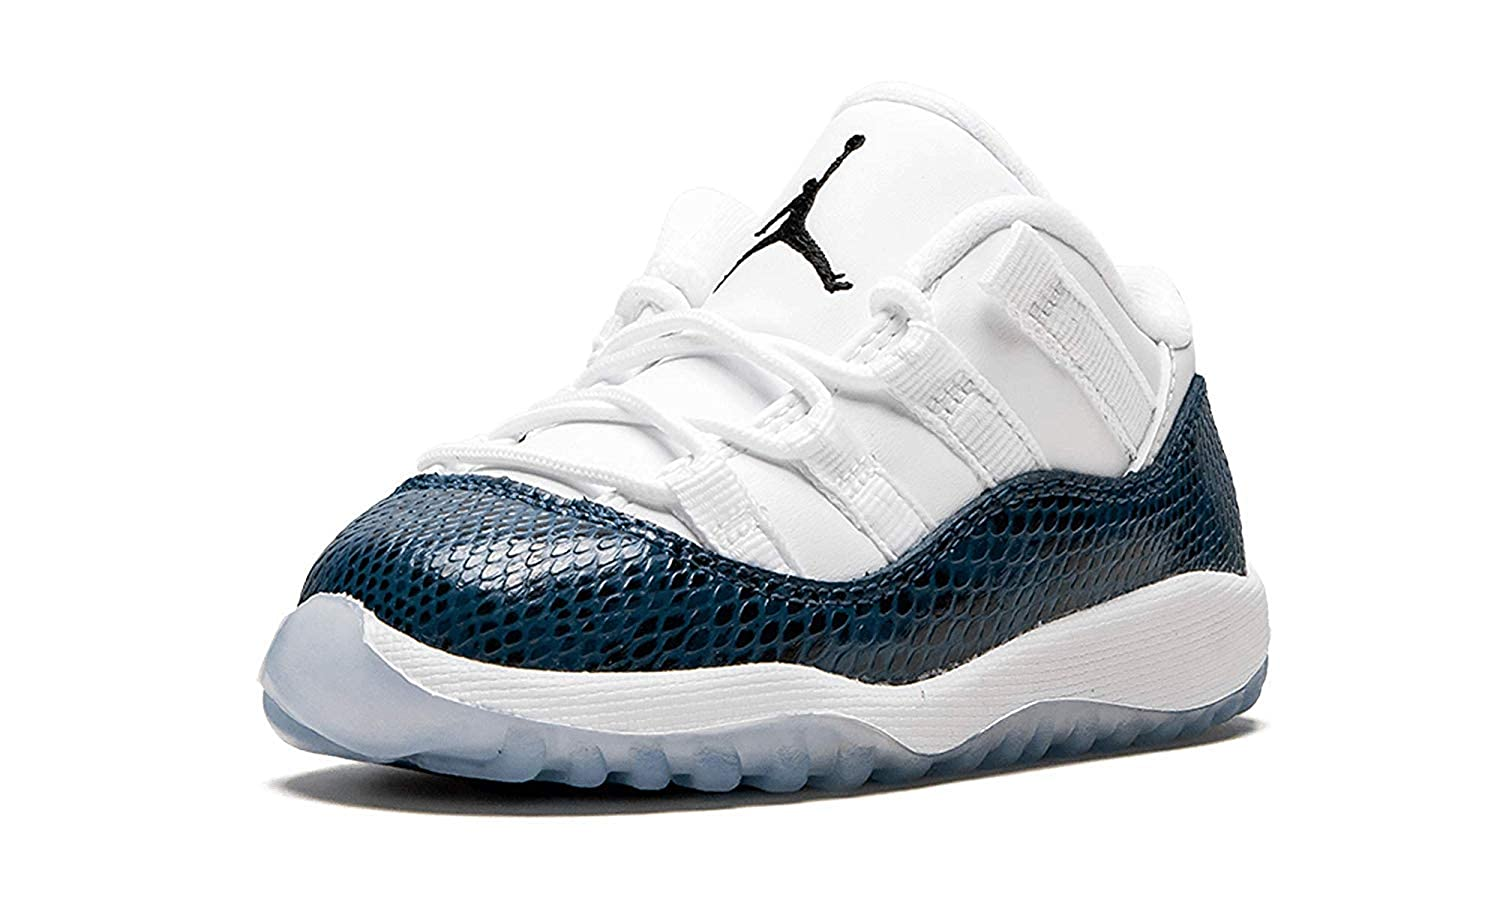 new concept c8c27 f8edf Amazon.com | Air Jordan Retro 11 Low Navy Snakeskin LE White ...